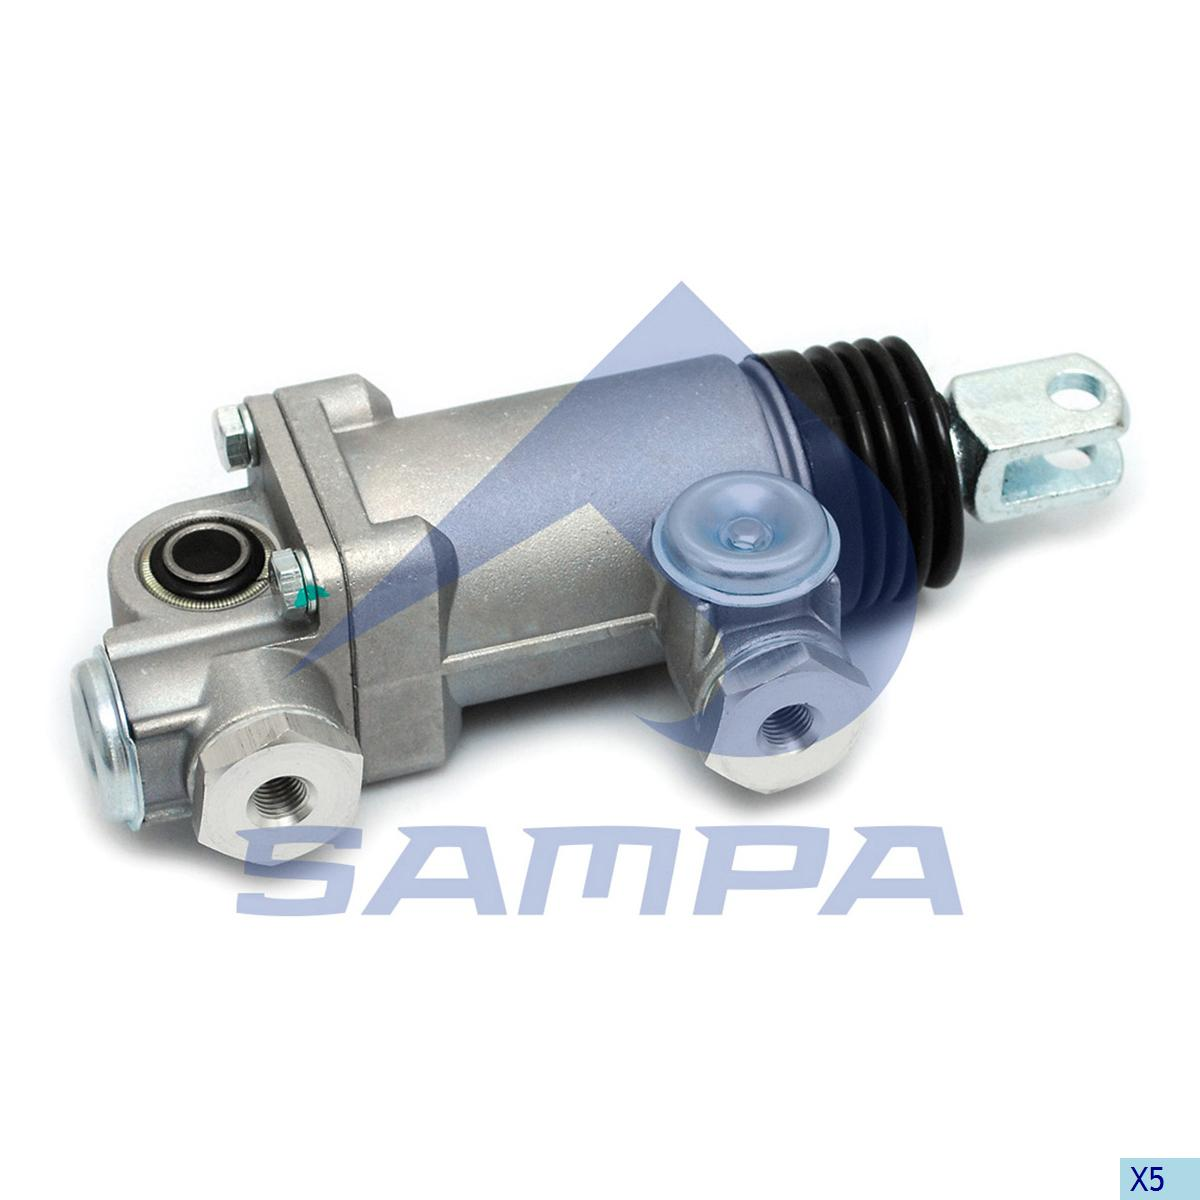 Cylinder, Gear Shifting, Mercedes, Gear Box